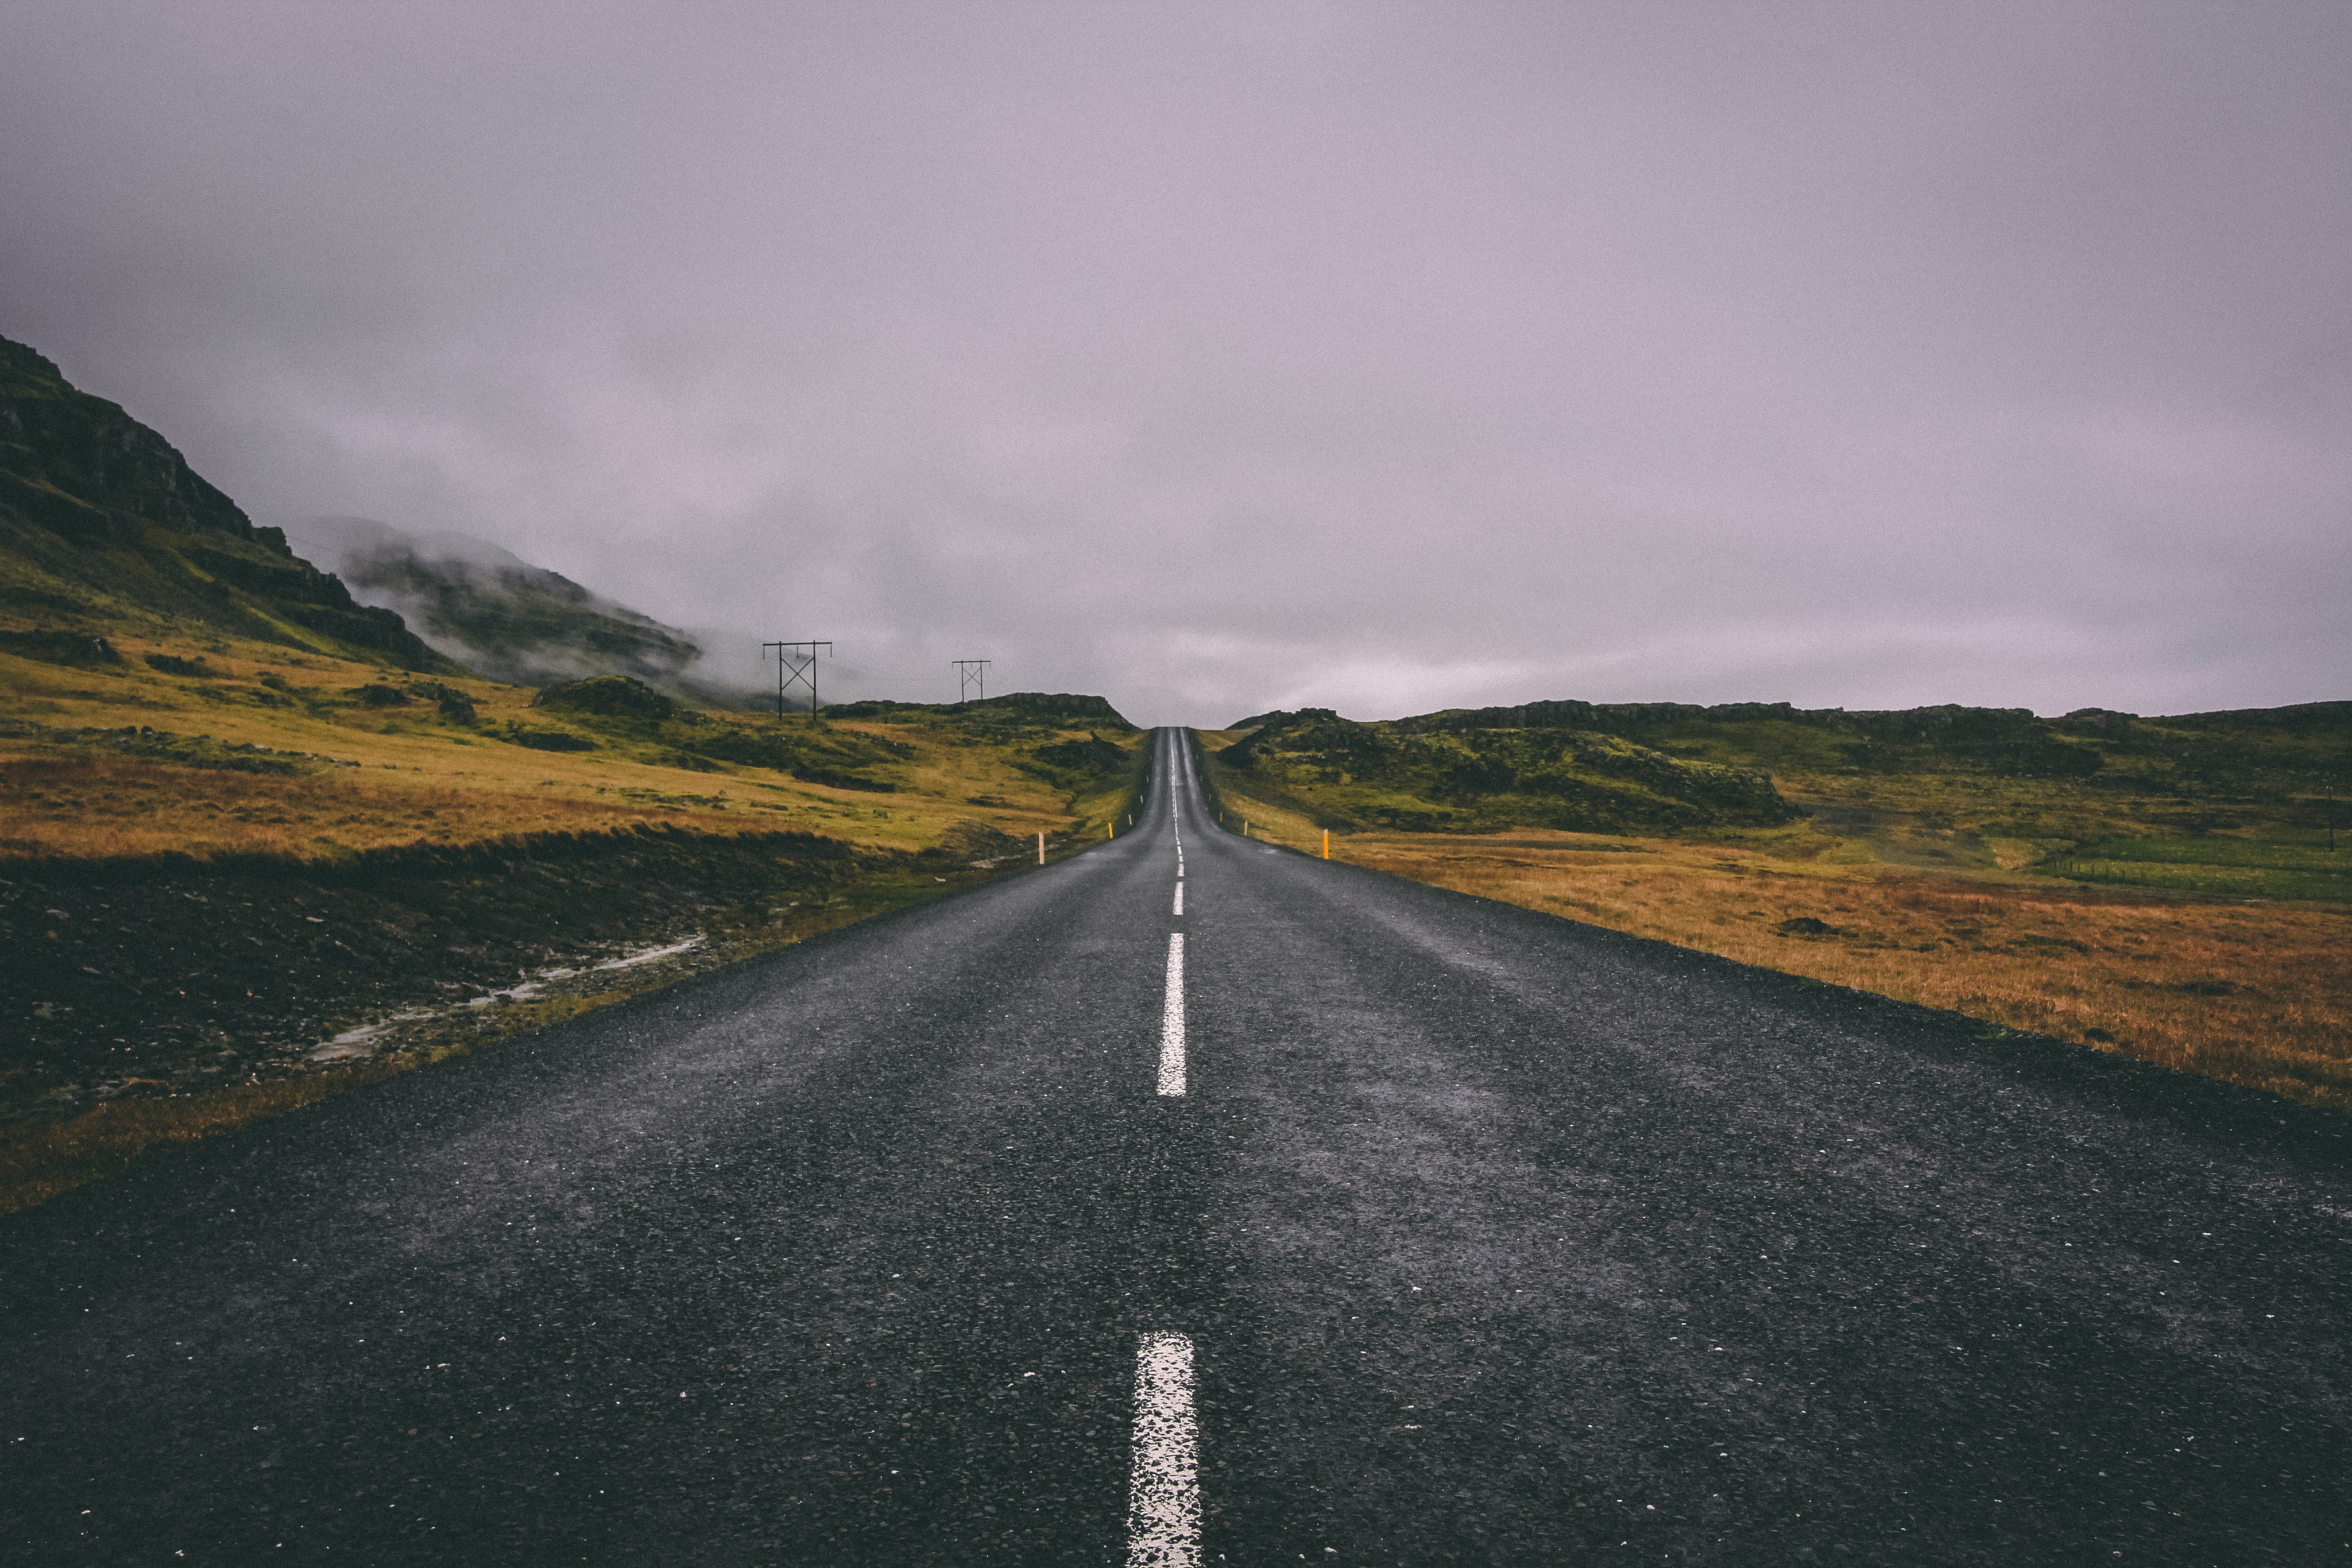 Looking at the horizon of a brown and green landscape from the center of a newly paved road under an overcast sky.